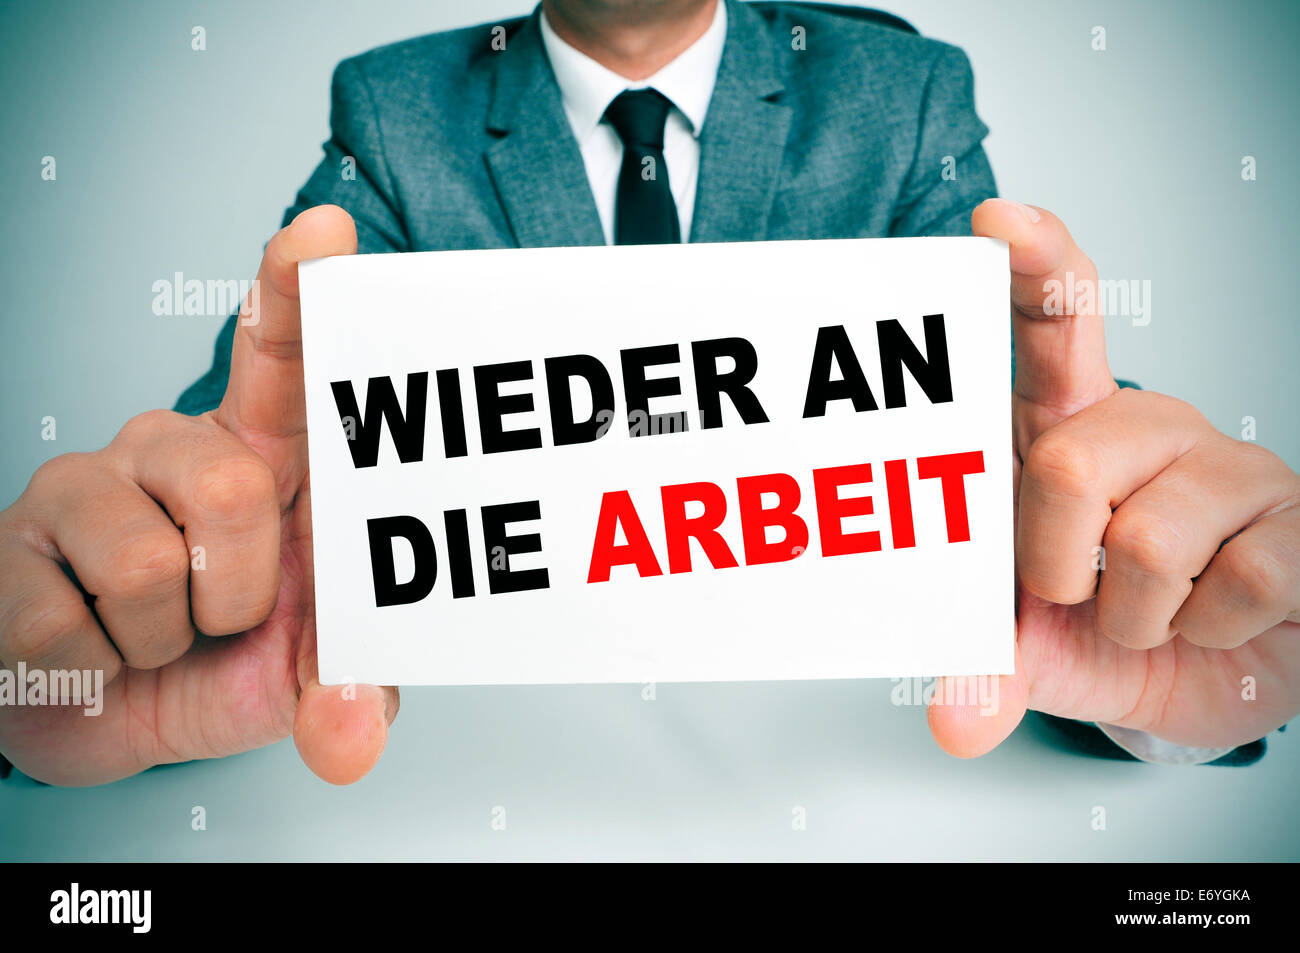 businessman holding a signboard with the text wieder an die arbeit, back to work in german, written in it - Stock Image